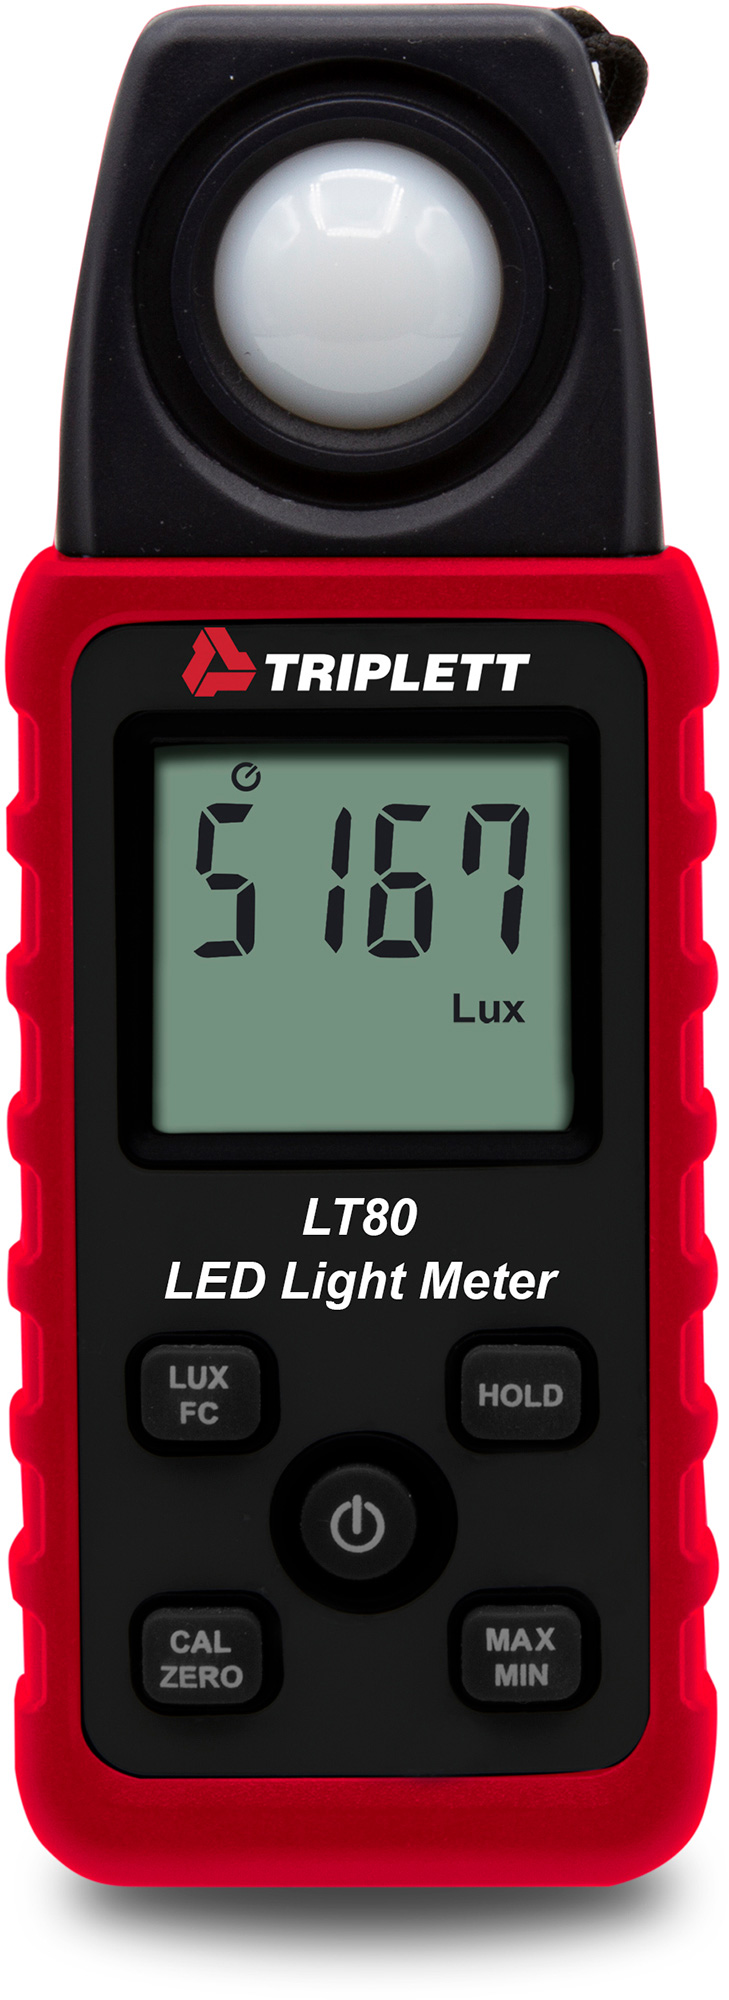 Triplett LT80 LED Light Meter - White LED Light Sources up to 40000 Fc TRIPL-LT80